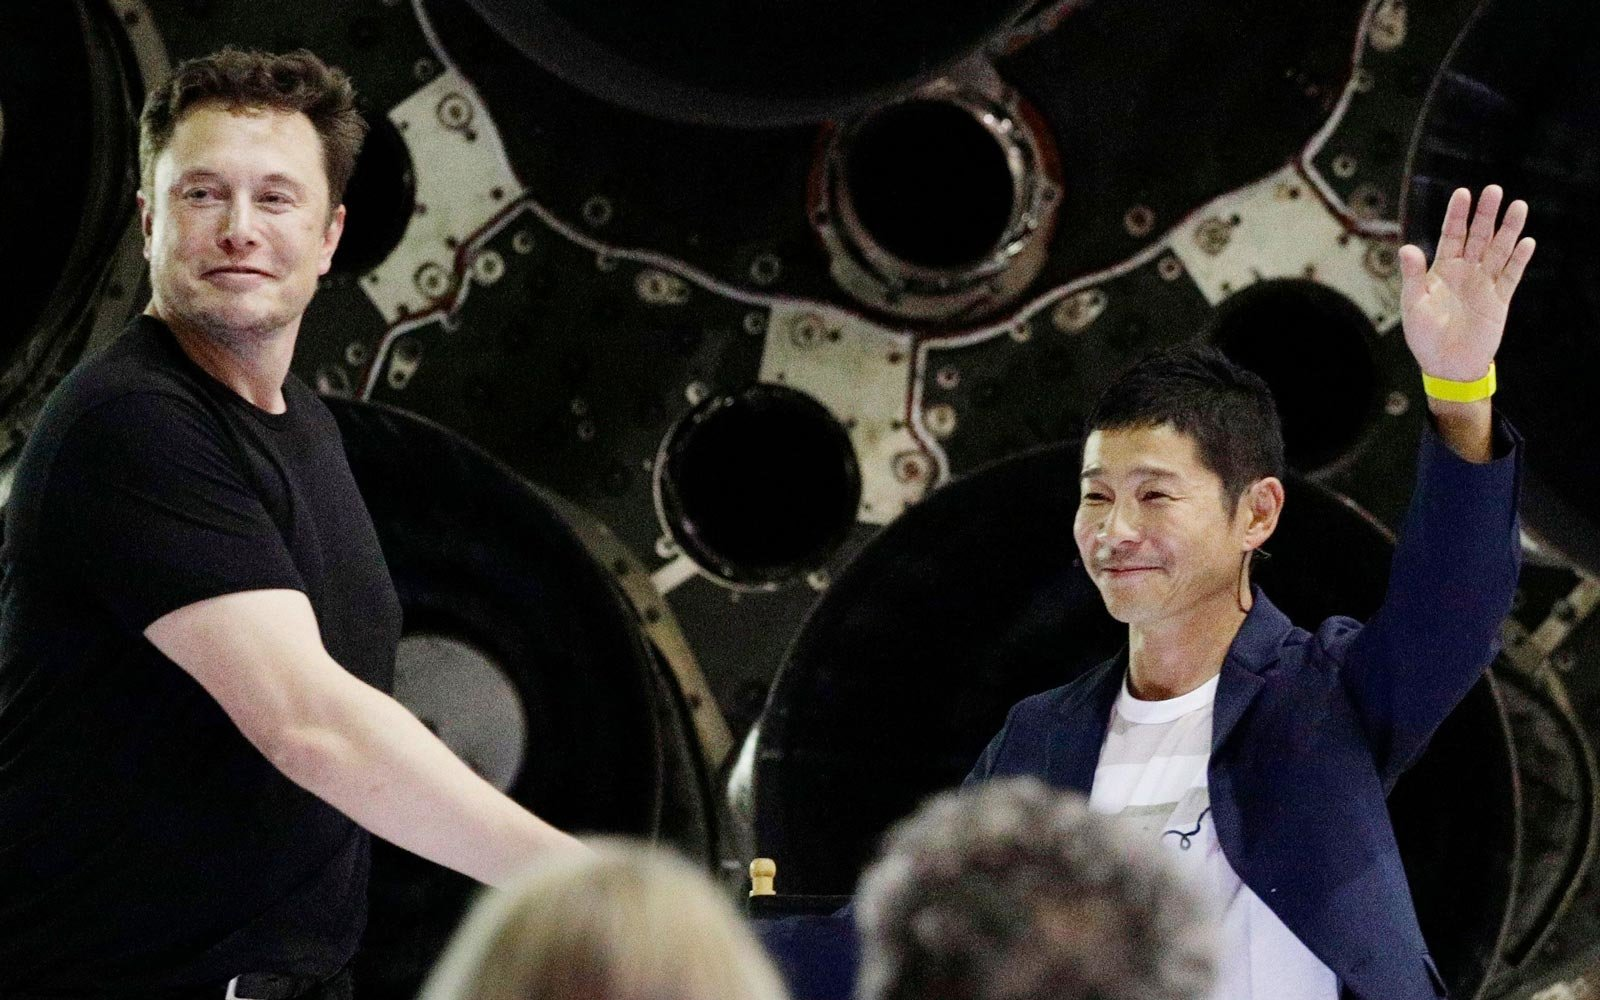 SpaceX founder and chief executive Elon Musk, left, shakes hands with Japanese billionaire Yusaku Maezawa, right, after announcing him as the first private passenger on a trip around the moon.